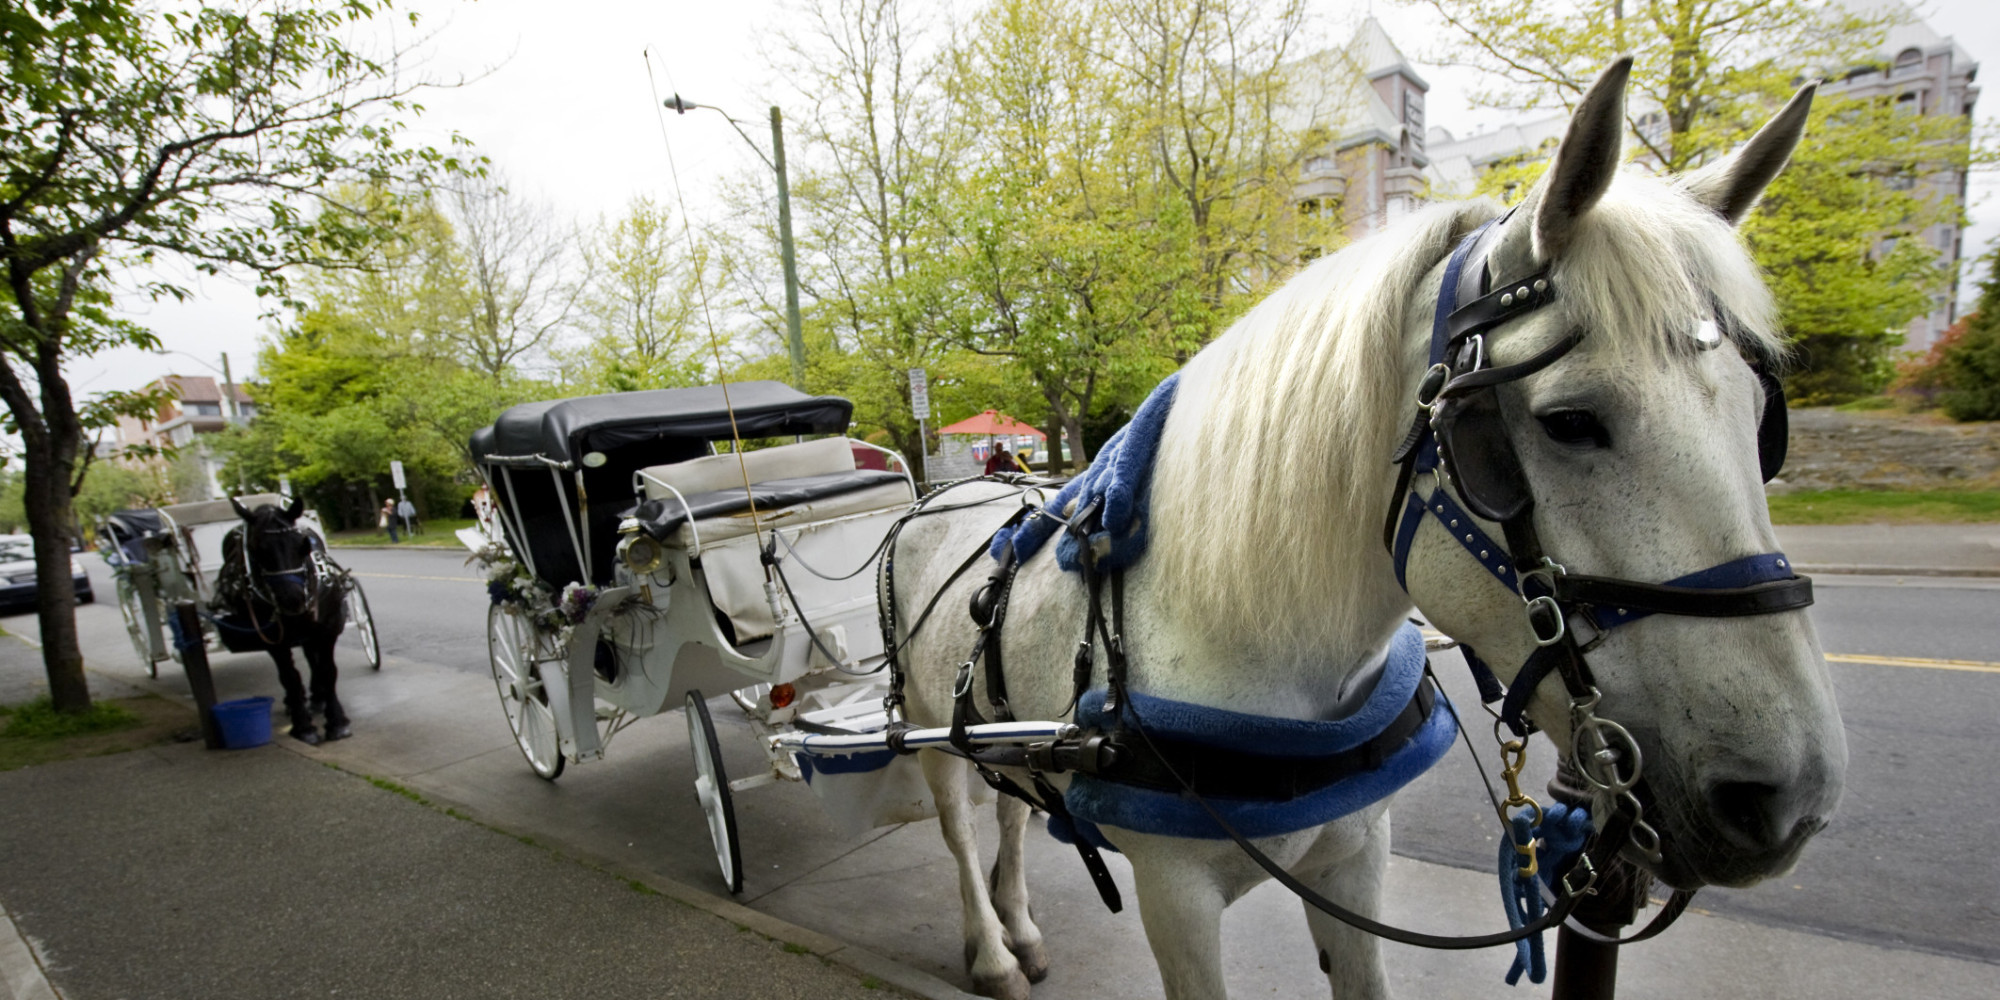 Horse Drawn Carriages In Victoria B C Should Be Banned